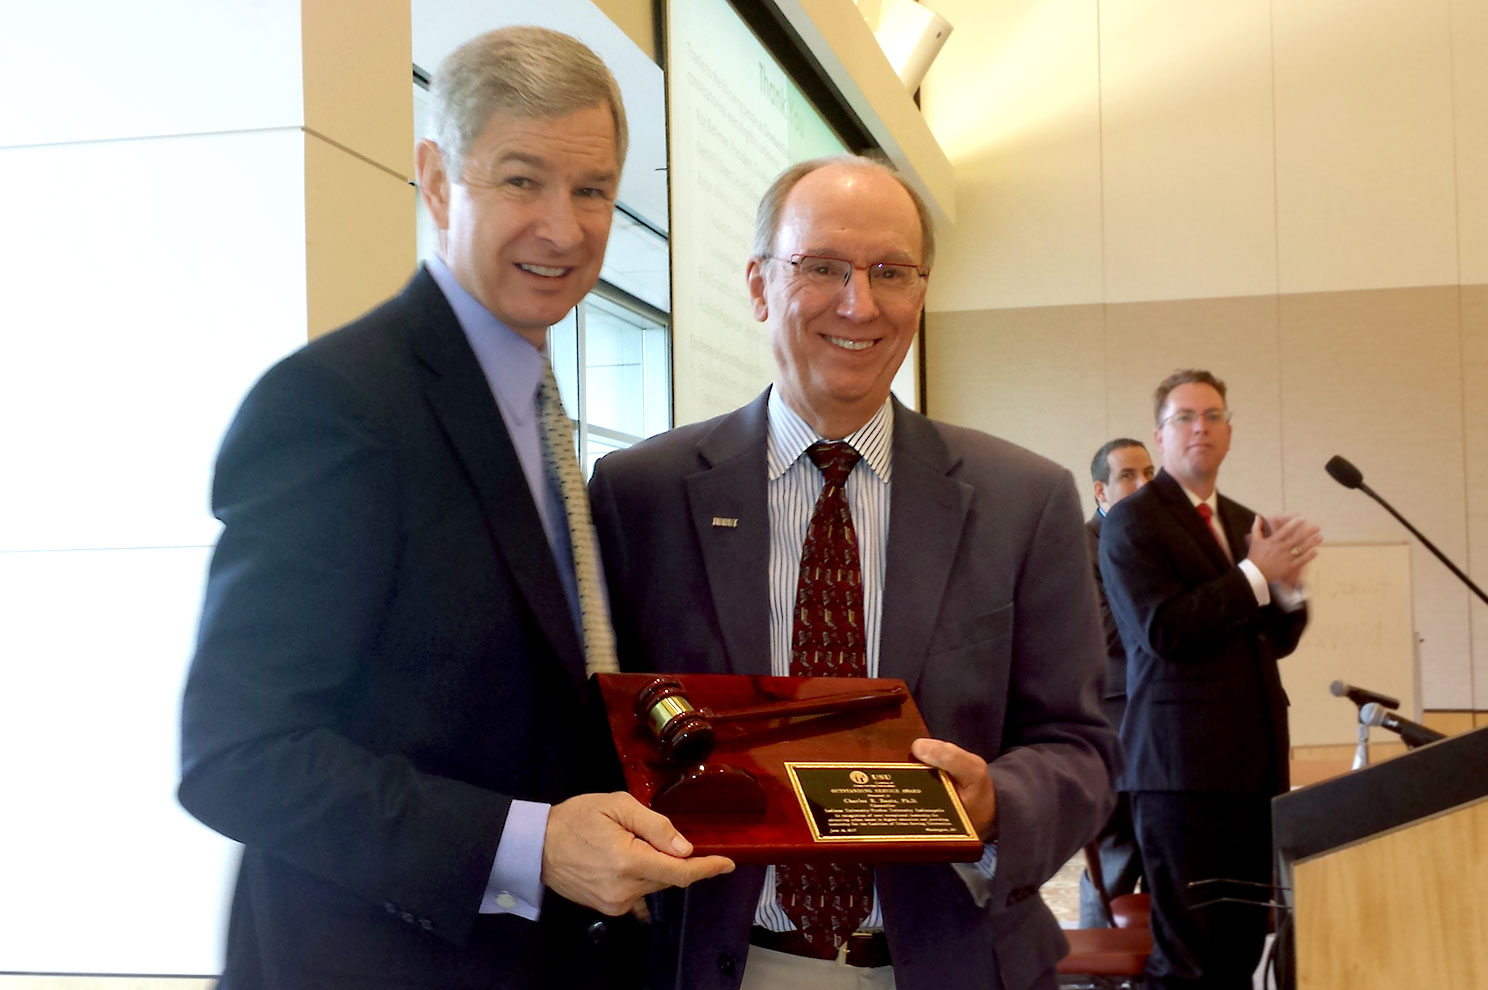 Chancellor Bantz receives a plaque from Mark Becker, president of Georgia State University.